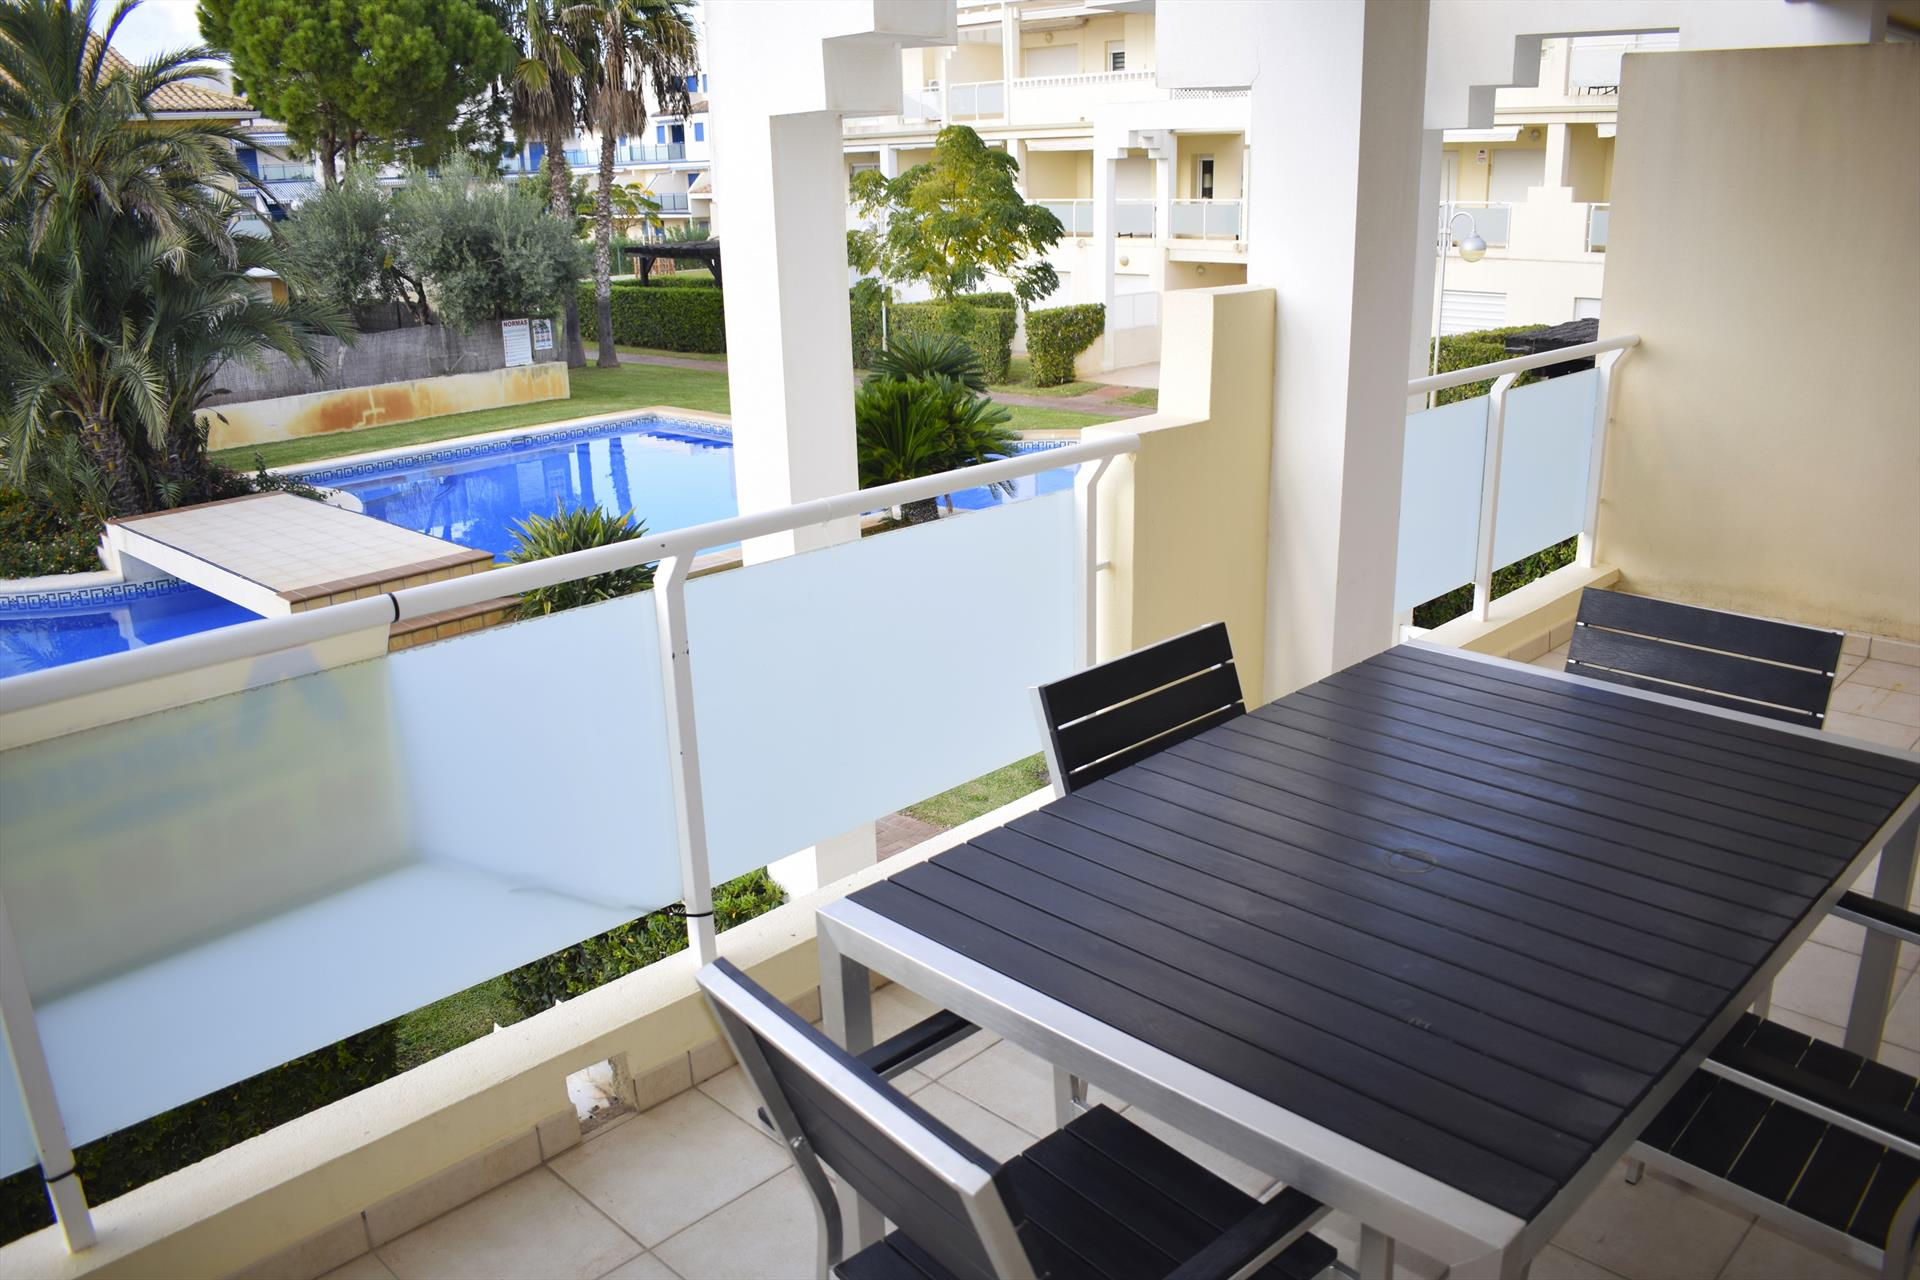 DUP3027 Playa Rabdells, Large and luxury apartment in Oliva, on the Costa Blanca, Spain  with communal pool for 6 persons.....